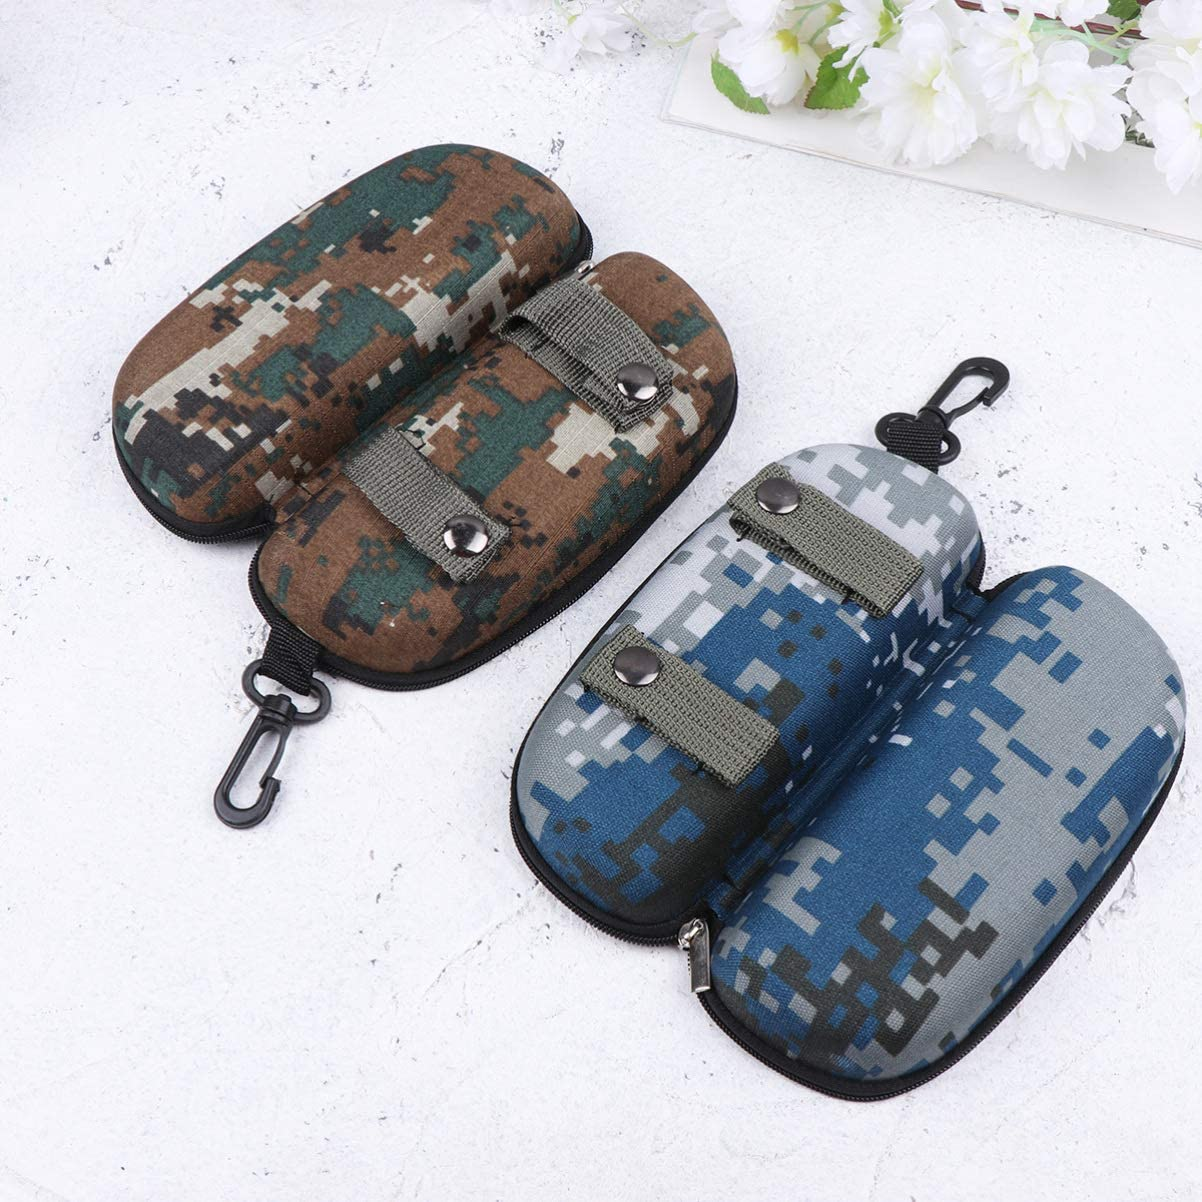 BESPORTBLE Anti-Pressure Zipper Eyeglasses Case Camouflage Outdoor Sports EVA Glasses Case Sunglasses Box Protector with Hook,4PCS